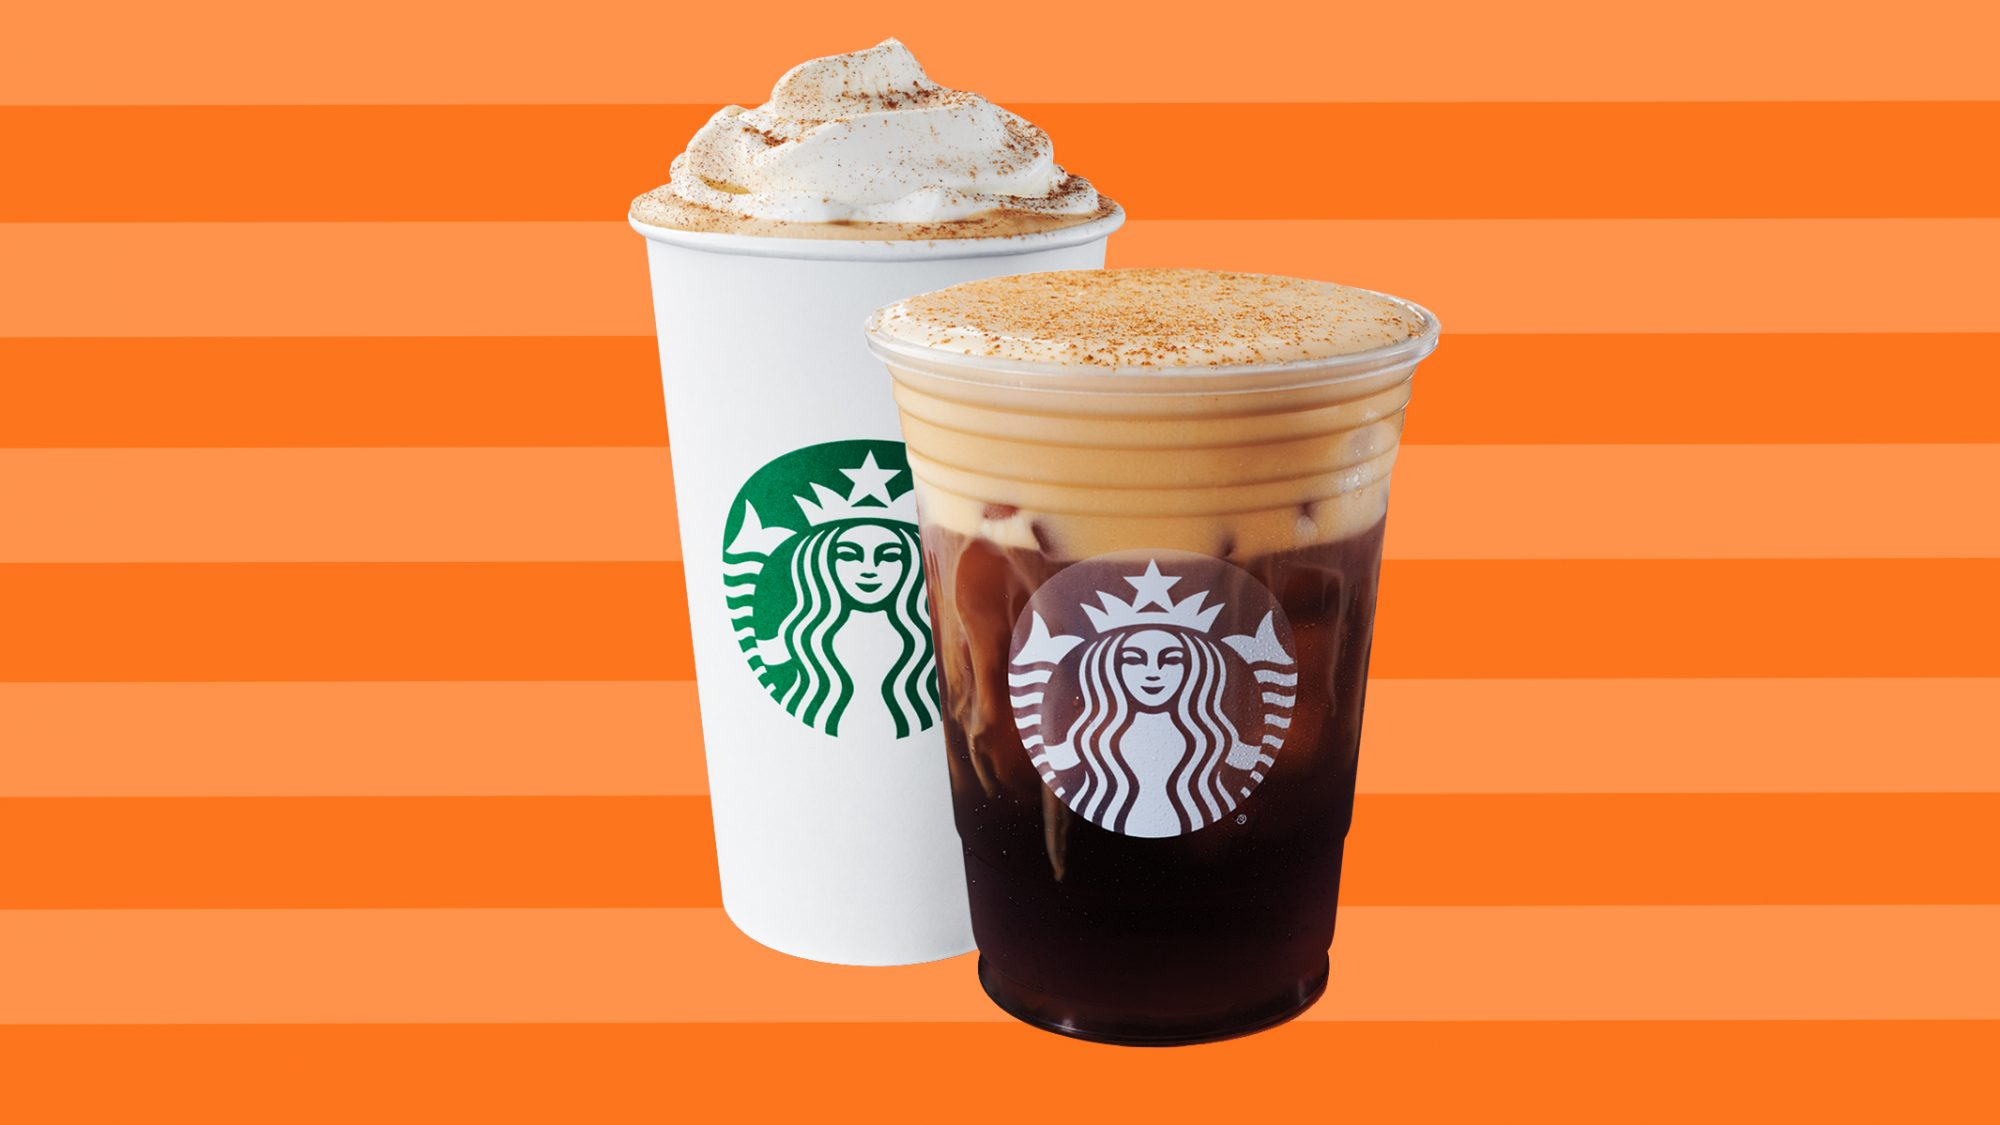 Along with pumpkin spice lattes, Starbucks launches a new pumpkin drink